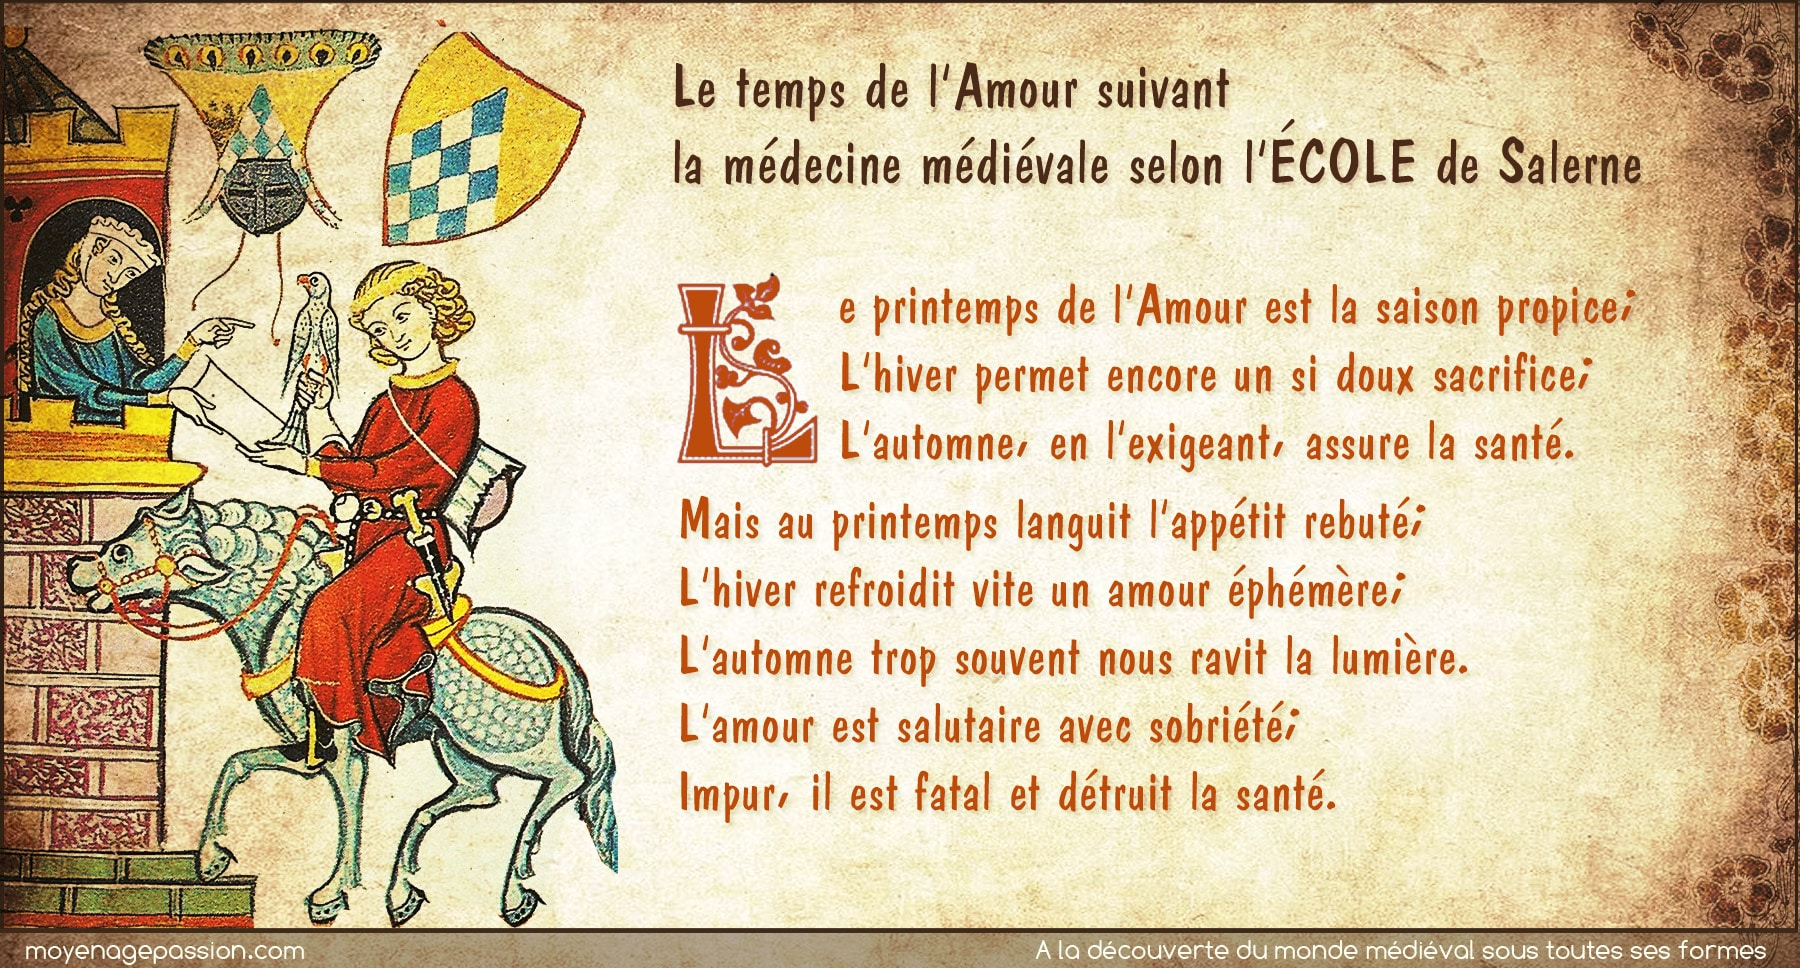 ecole_salerne_citation_medecine_medievale_amour_poesie_moyen-age_central